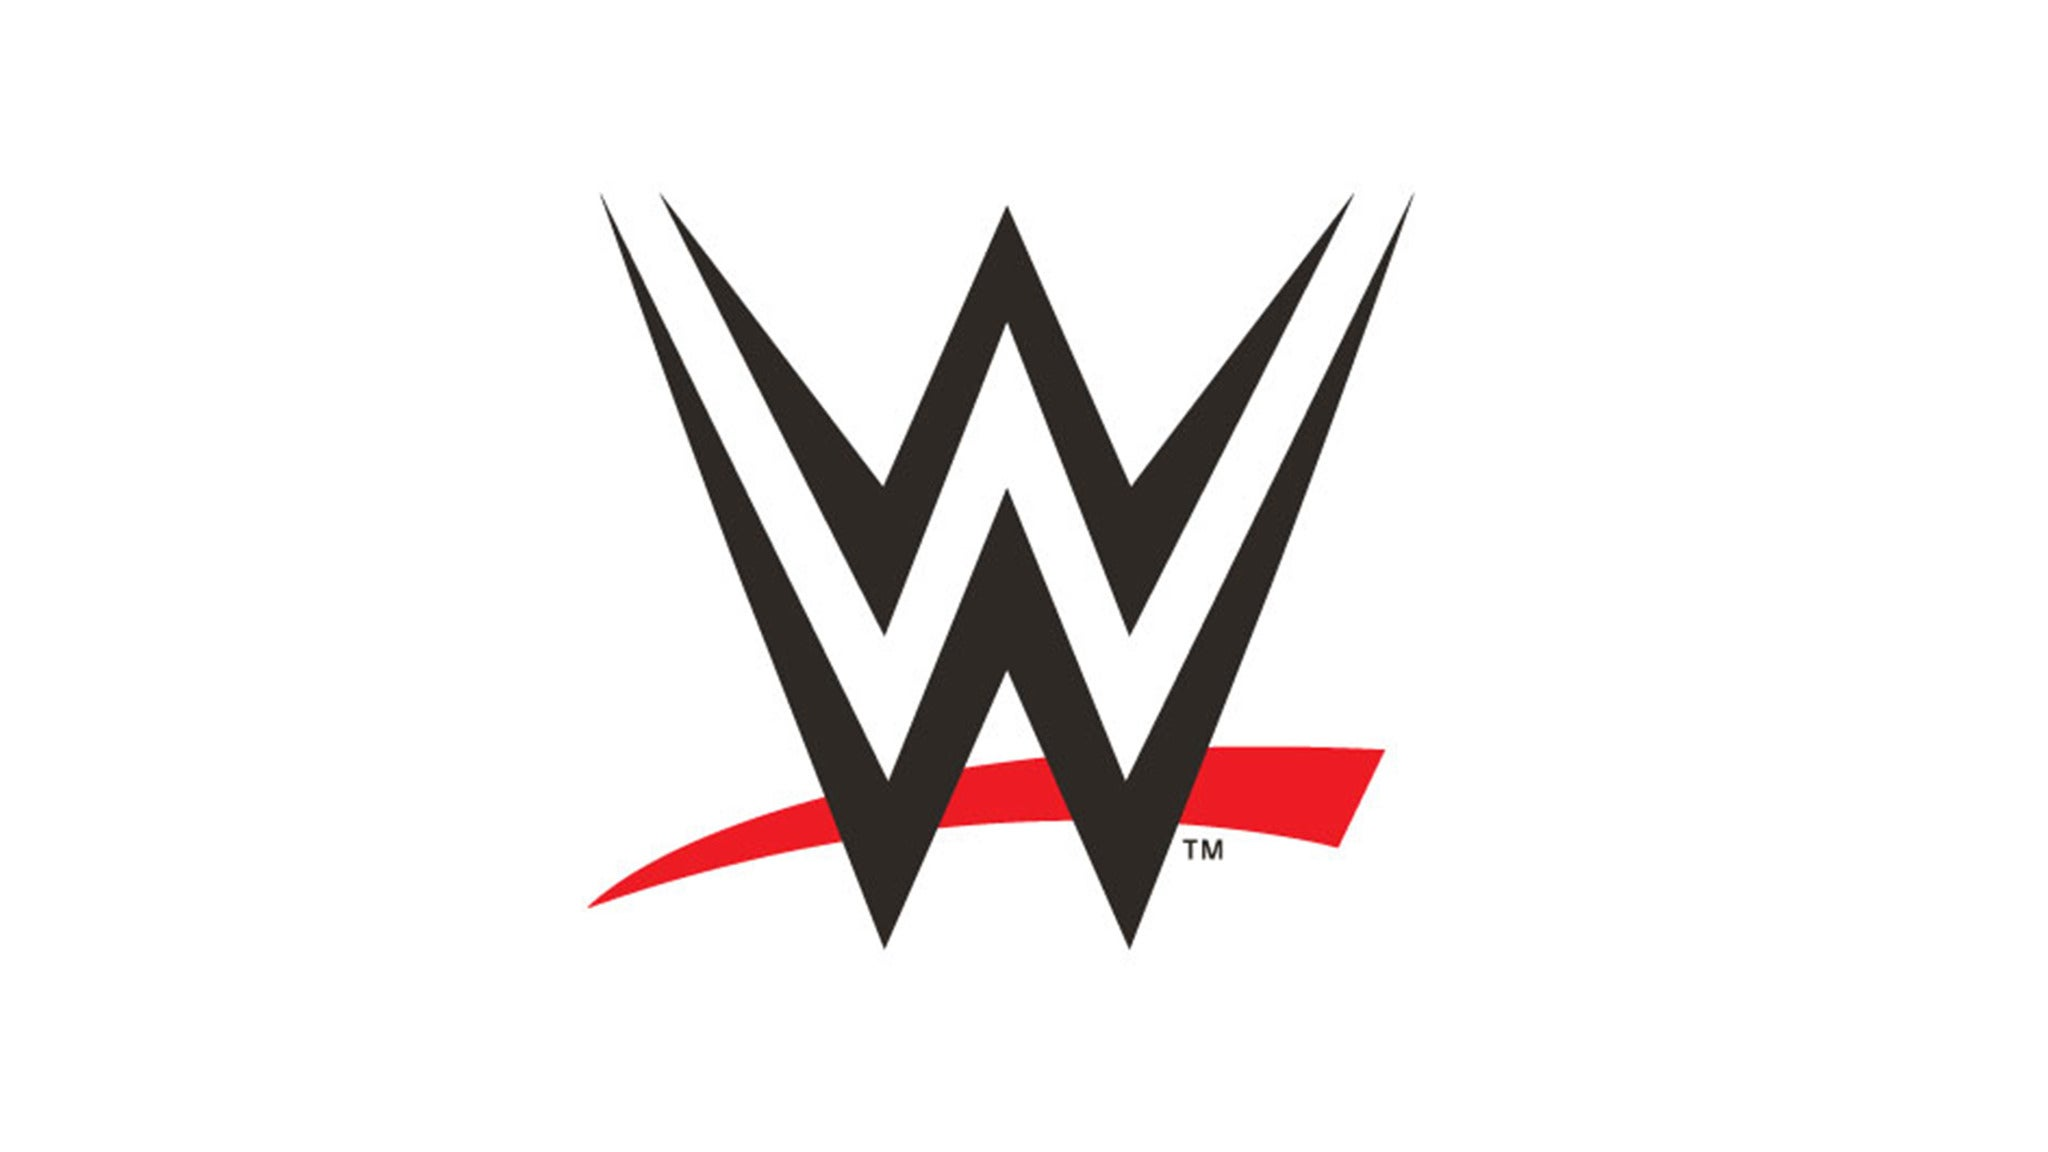 WWE - World Wrestling Entertainment at Havert L. Fenn Center